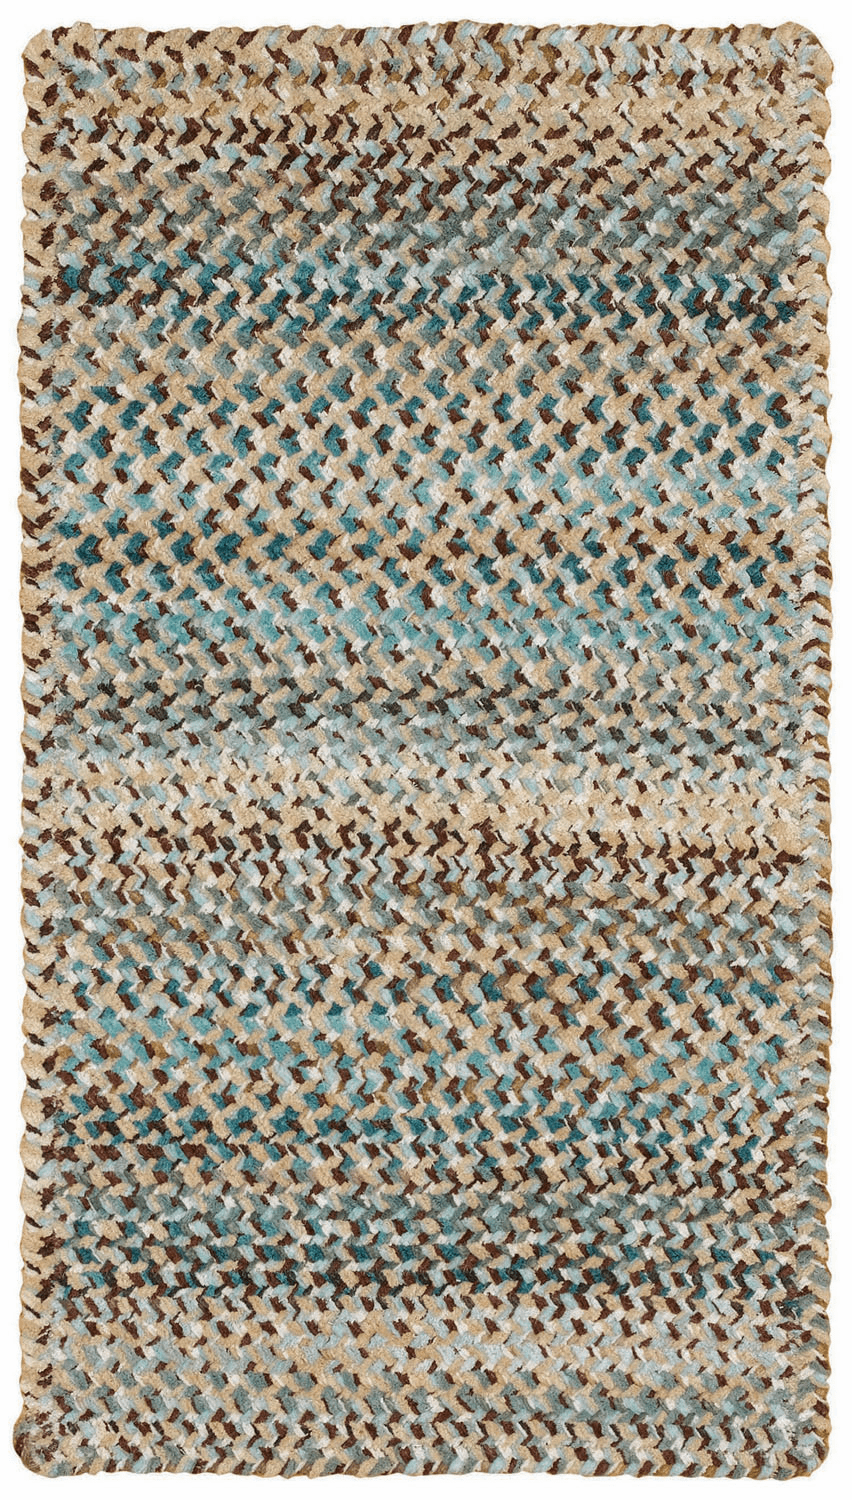 Hand-Braided Deep Blue Rug